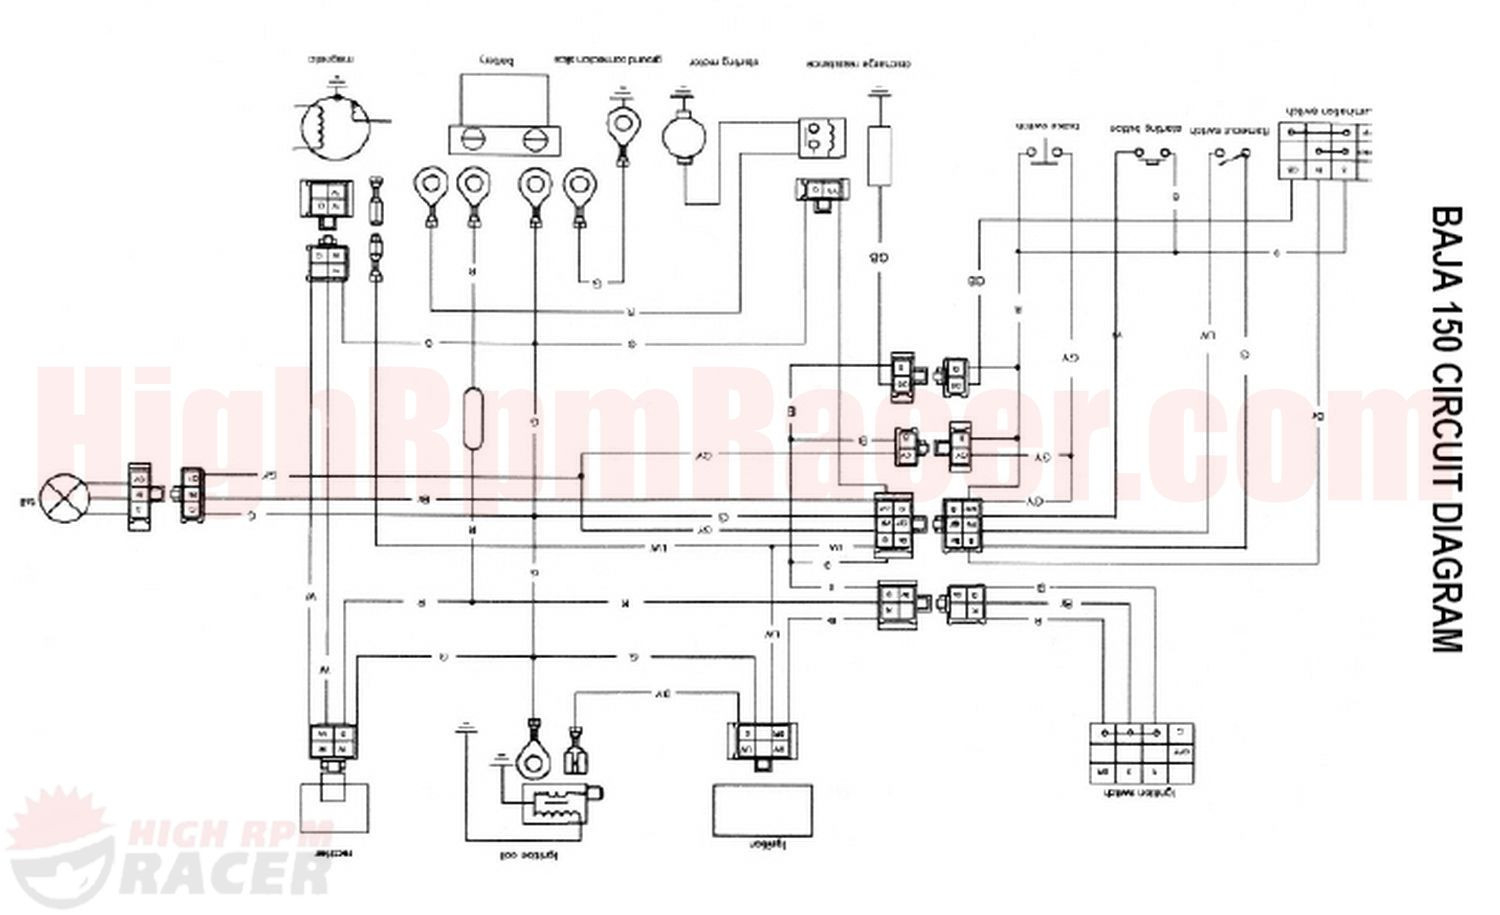 Coolster Cc Atv Wiring Diagram Diagram Likewise Chinese Atv Wiring Diagrams On Coolster Atv Cc Rh Gistnote Co A on 110cc Pit Bike Engine Diagram